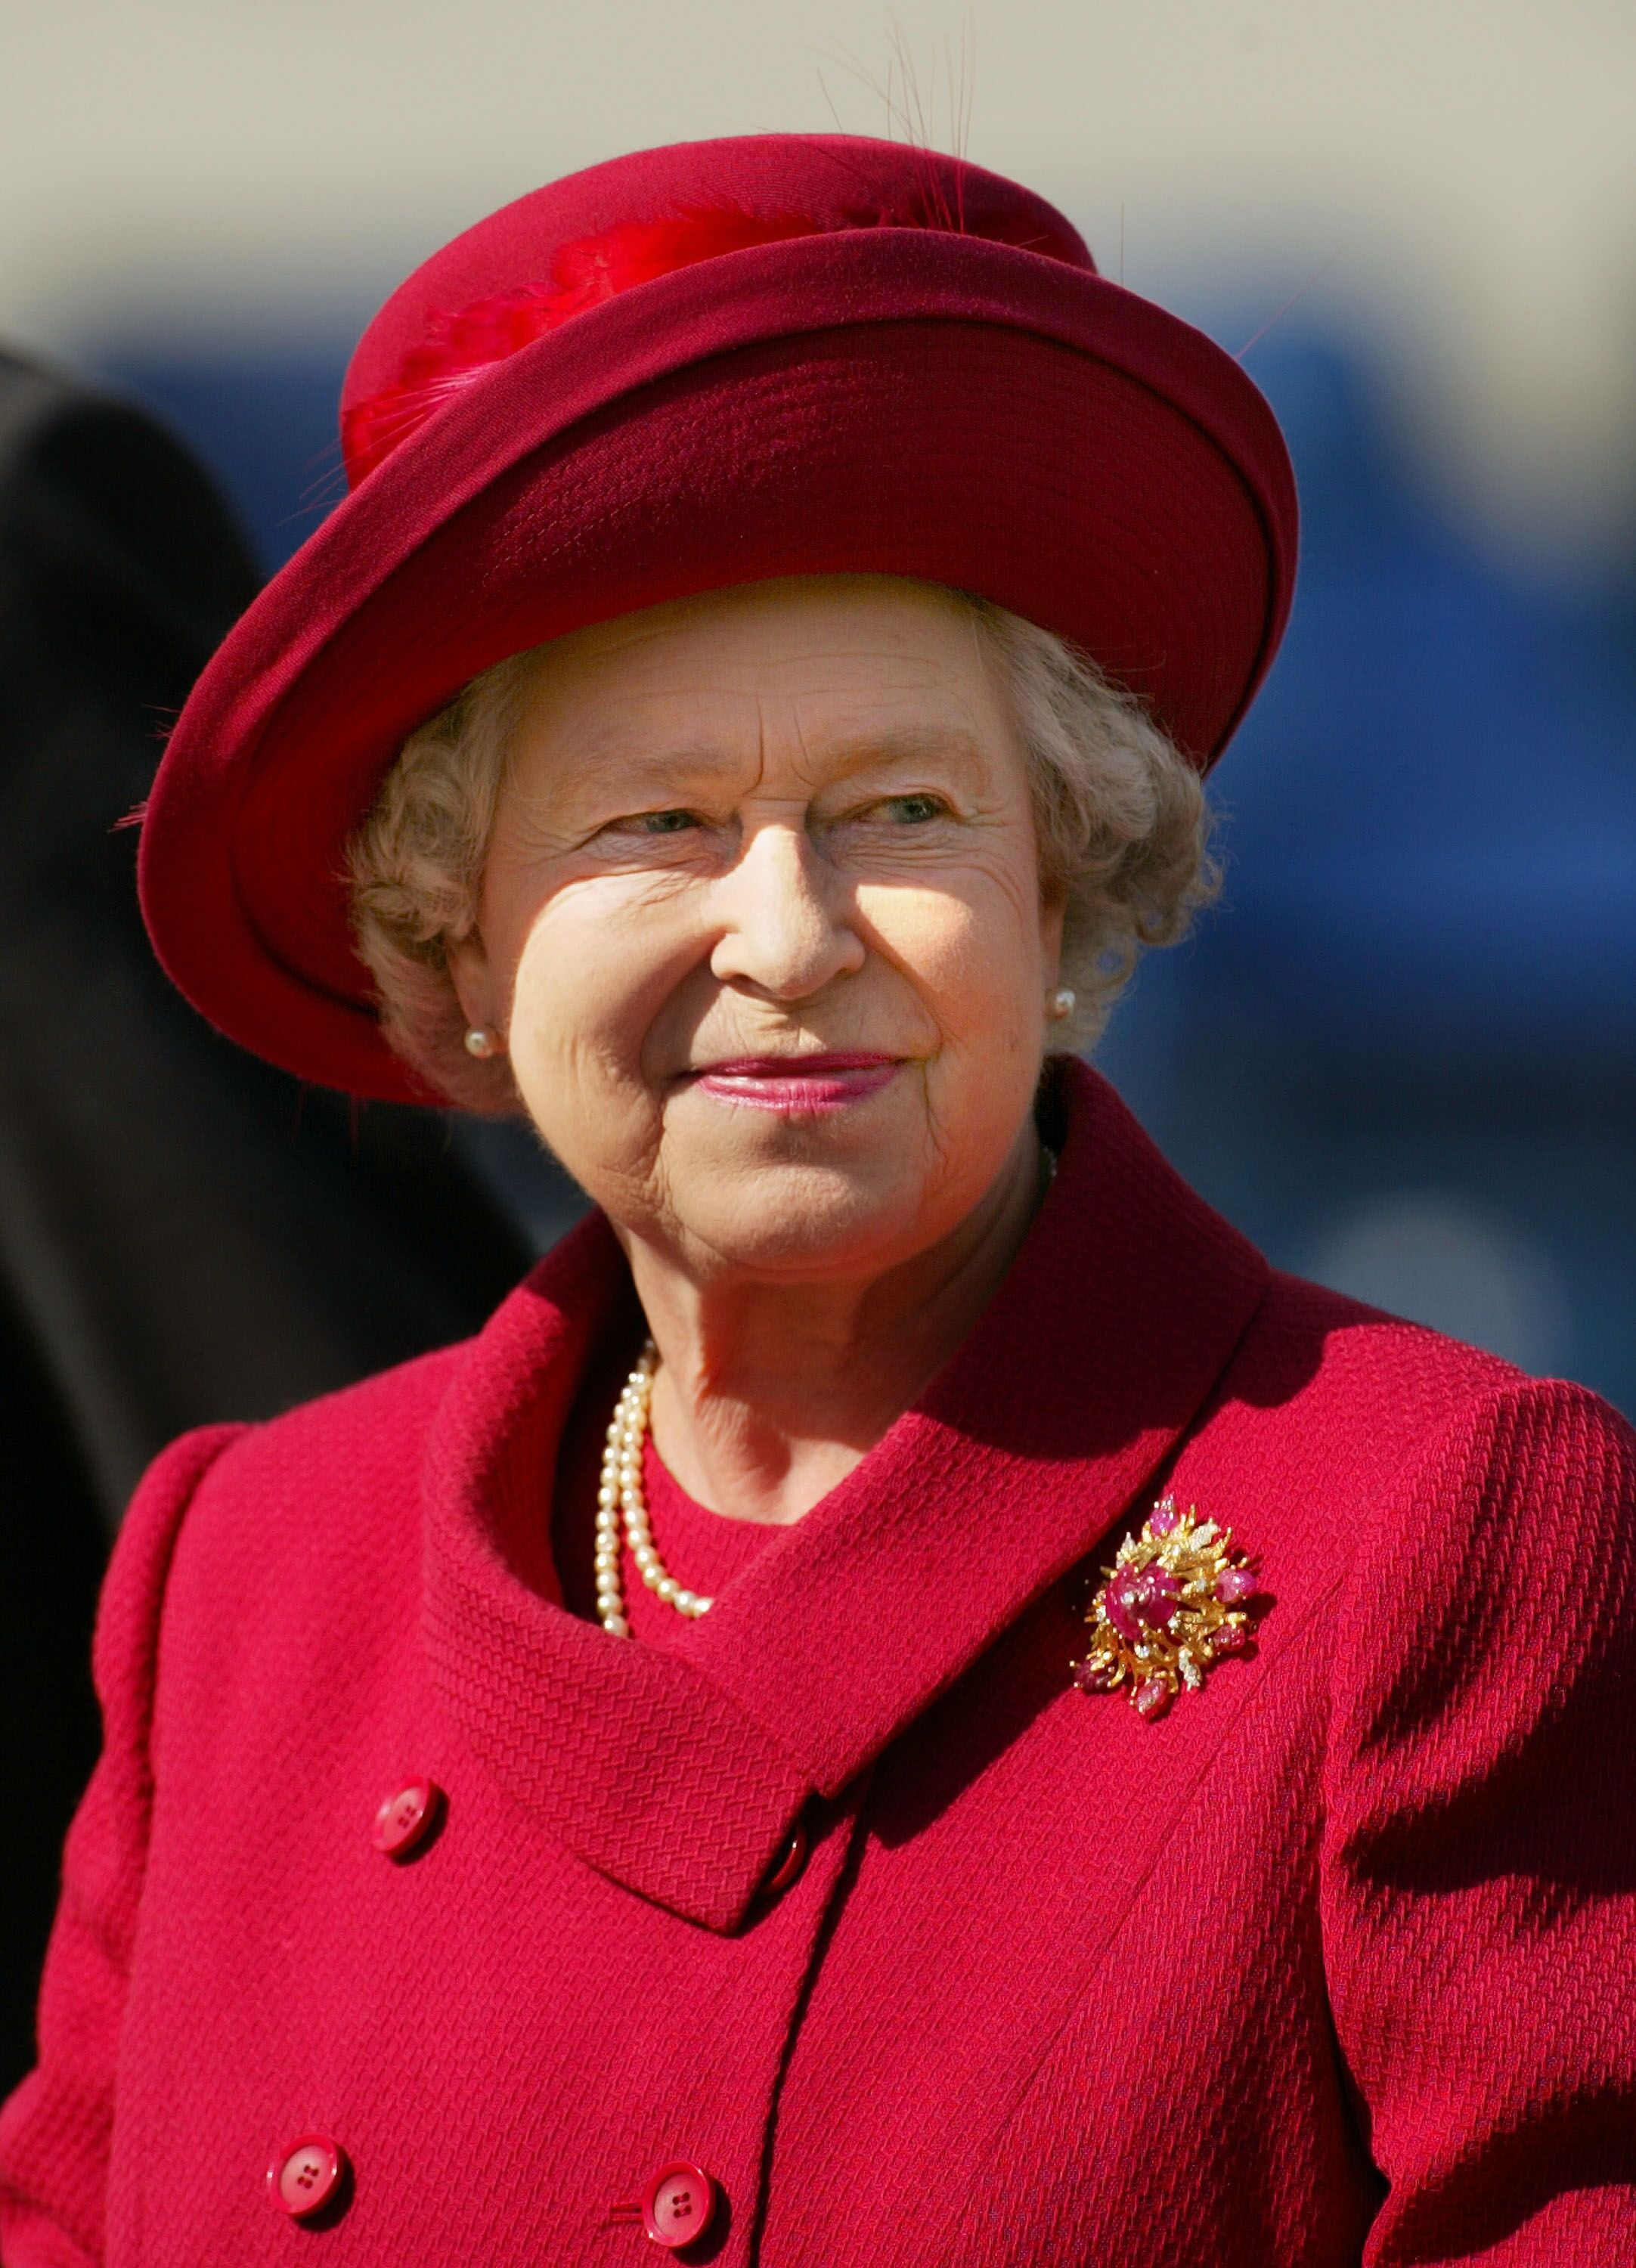 Queen Elizabeth at The Royal Windsor Horse Show at Windsor Great Park, England in May 18, 2002. | Sources: Getty Images